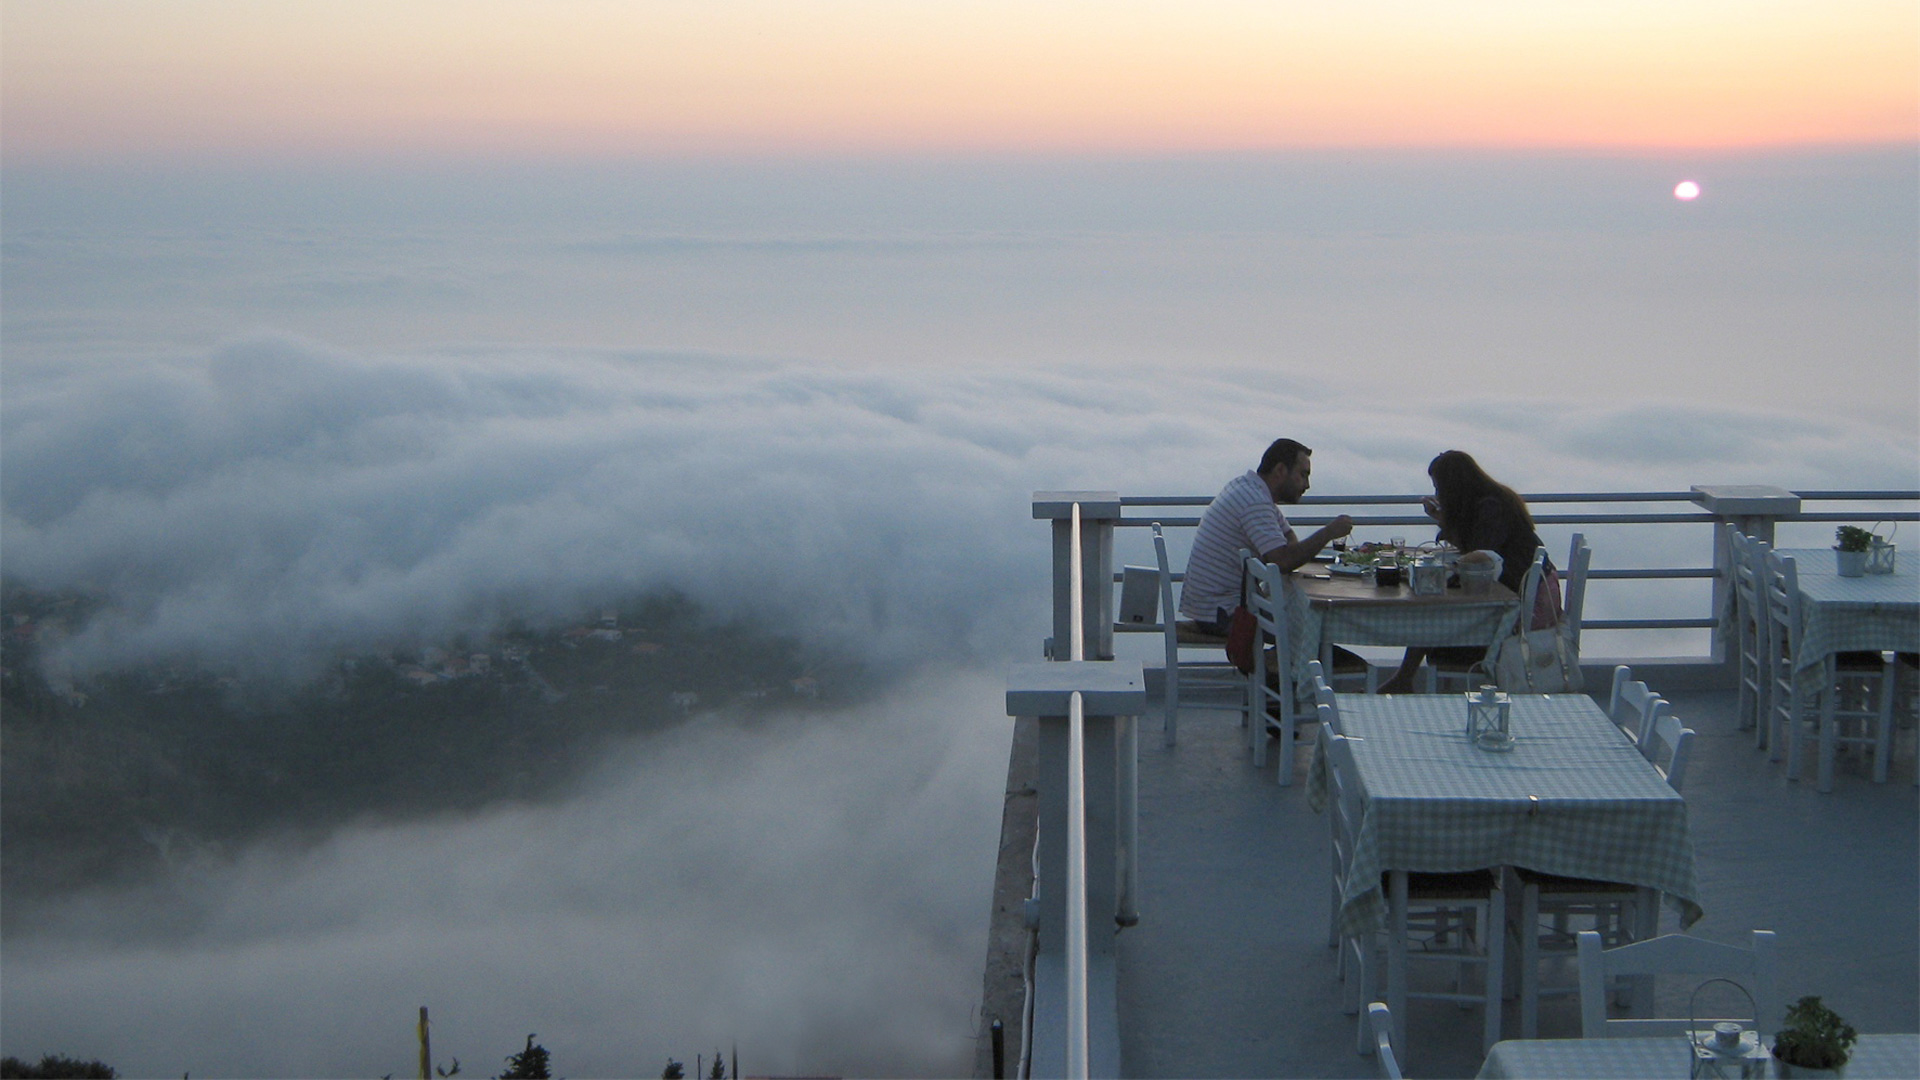 above the clouds…